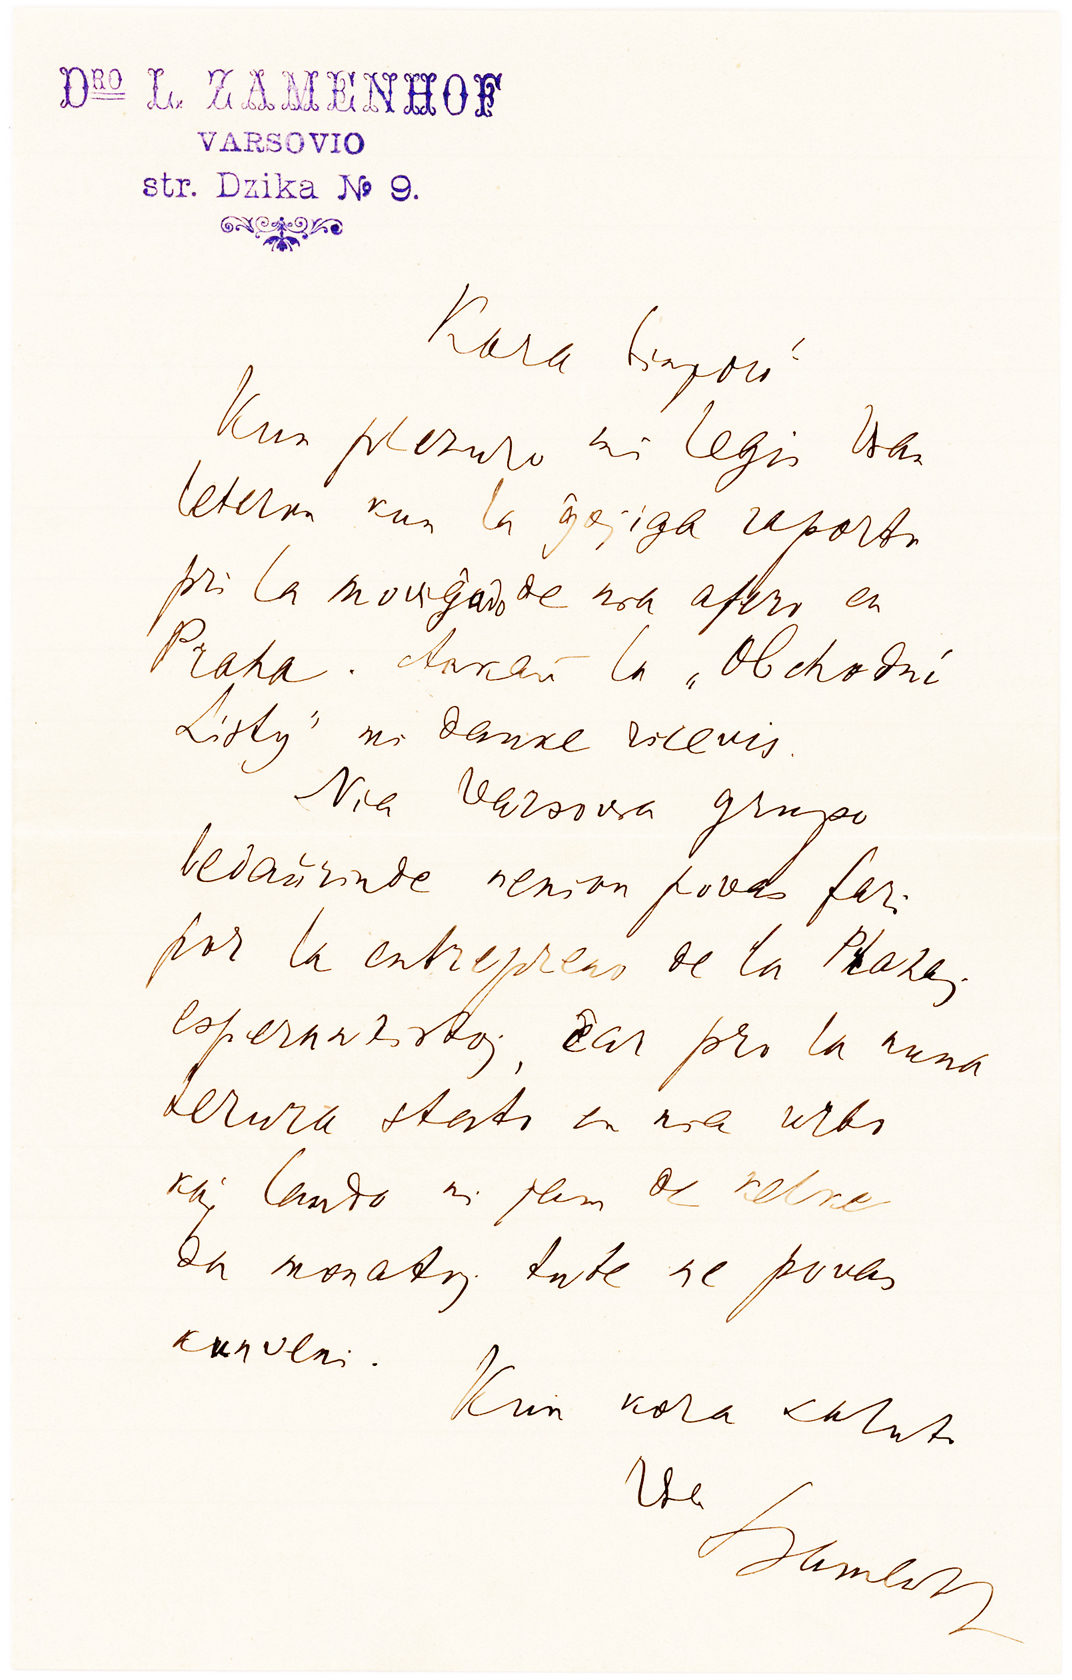 Autograph Letter in the Esperanto Language Signed by the Creator of Esperanto, who was Nominated 12 Times for the Nobel Peace Prize